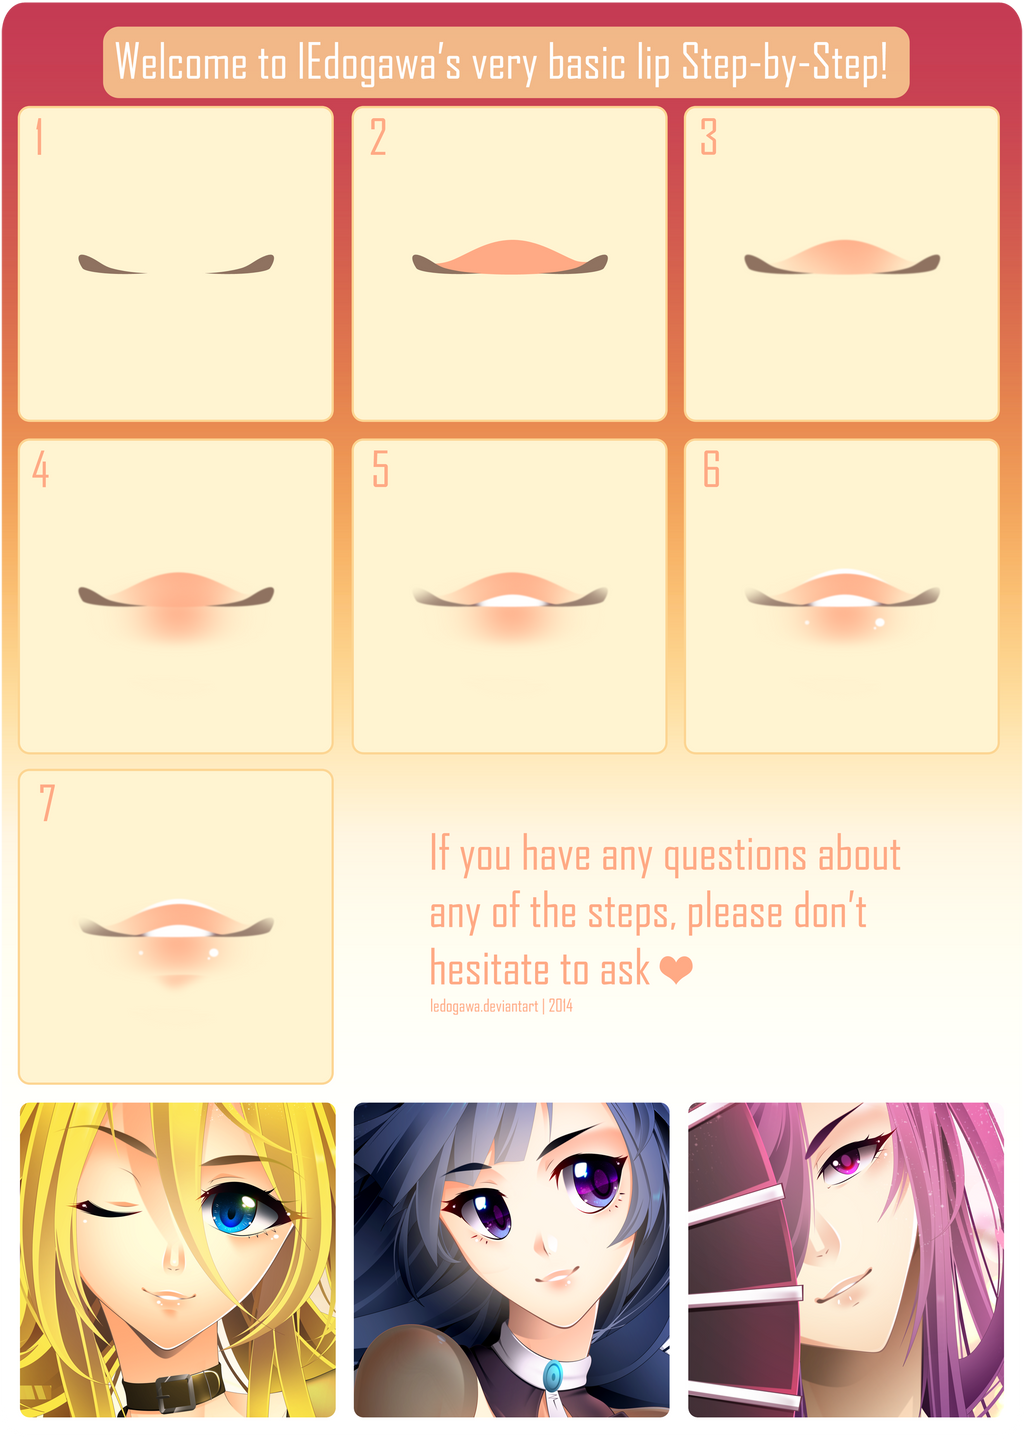 Anime lips step by step by ledogawa on deviantart anime lips step by step by ledogawa baditri Image collections